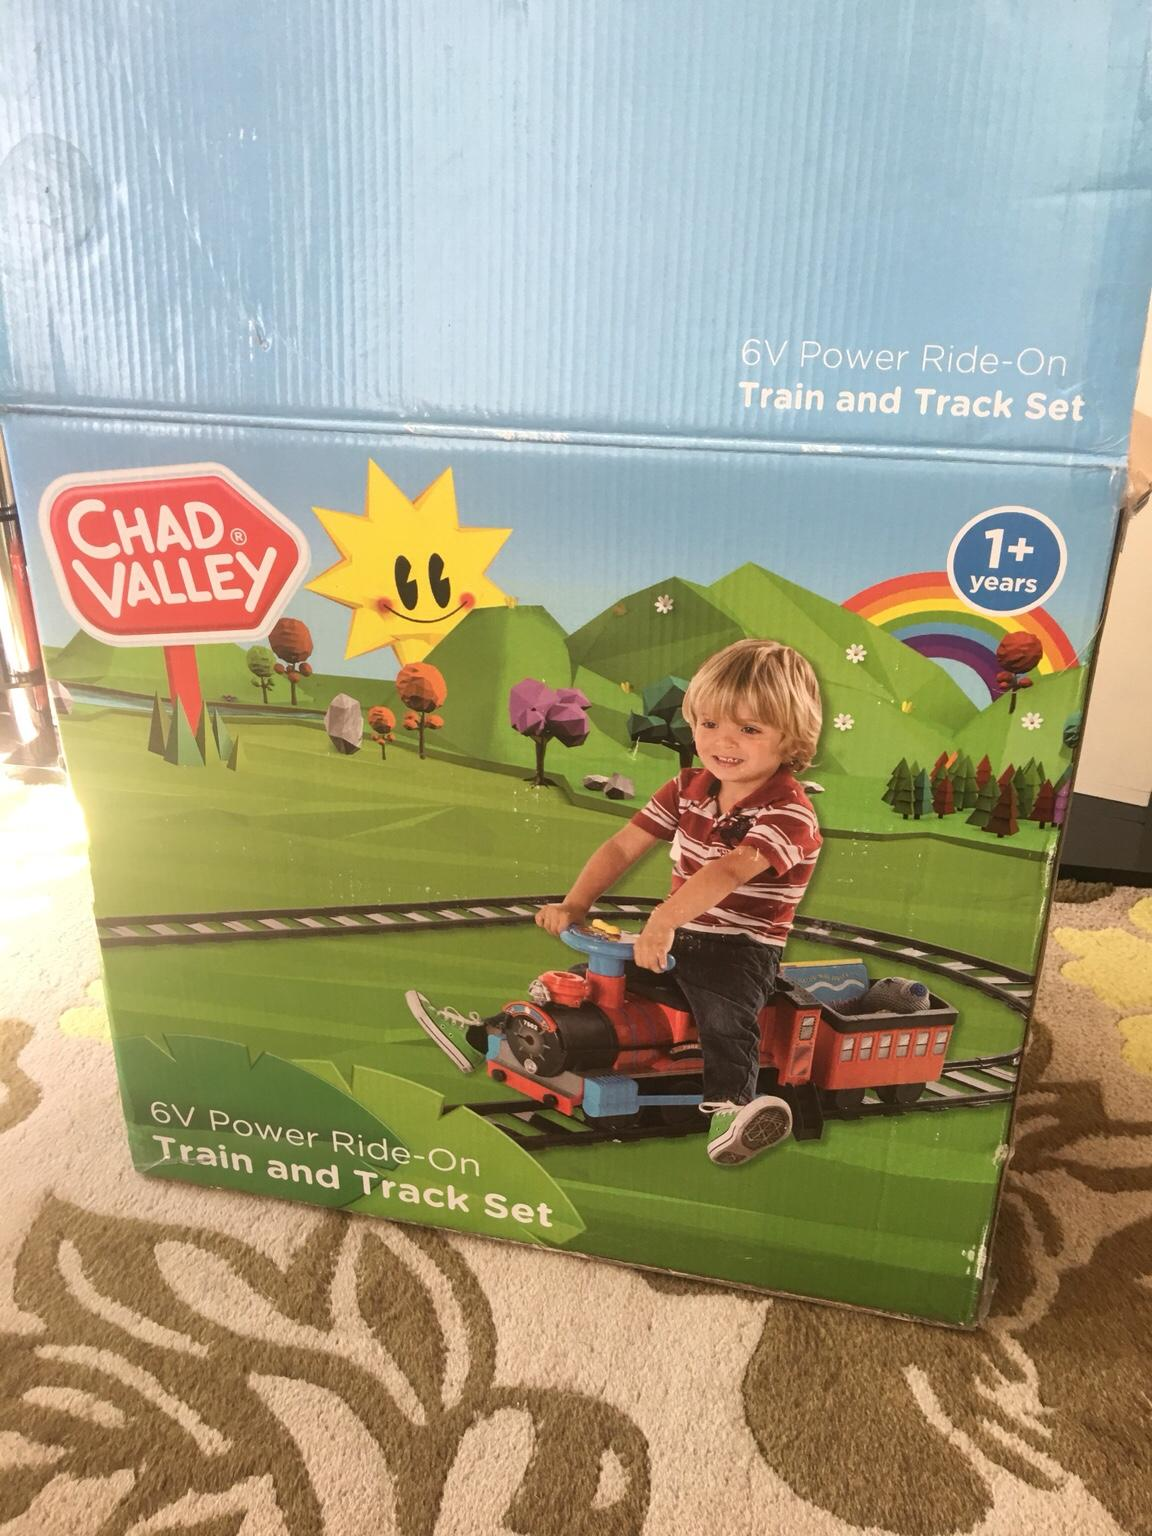 Years Chad Valley Powered Ride On Train and Track Set 1